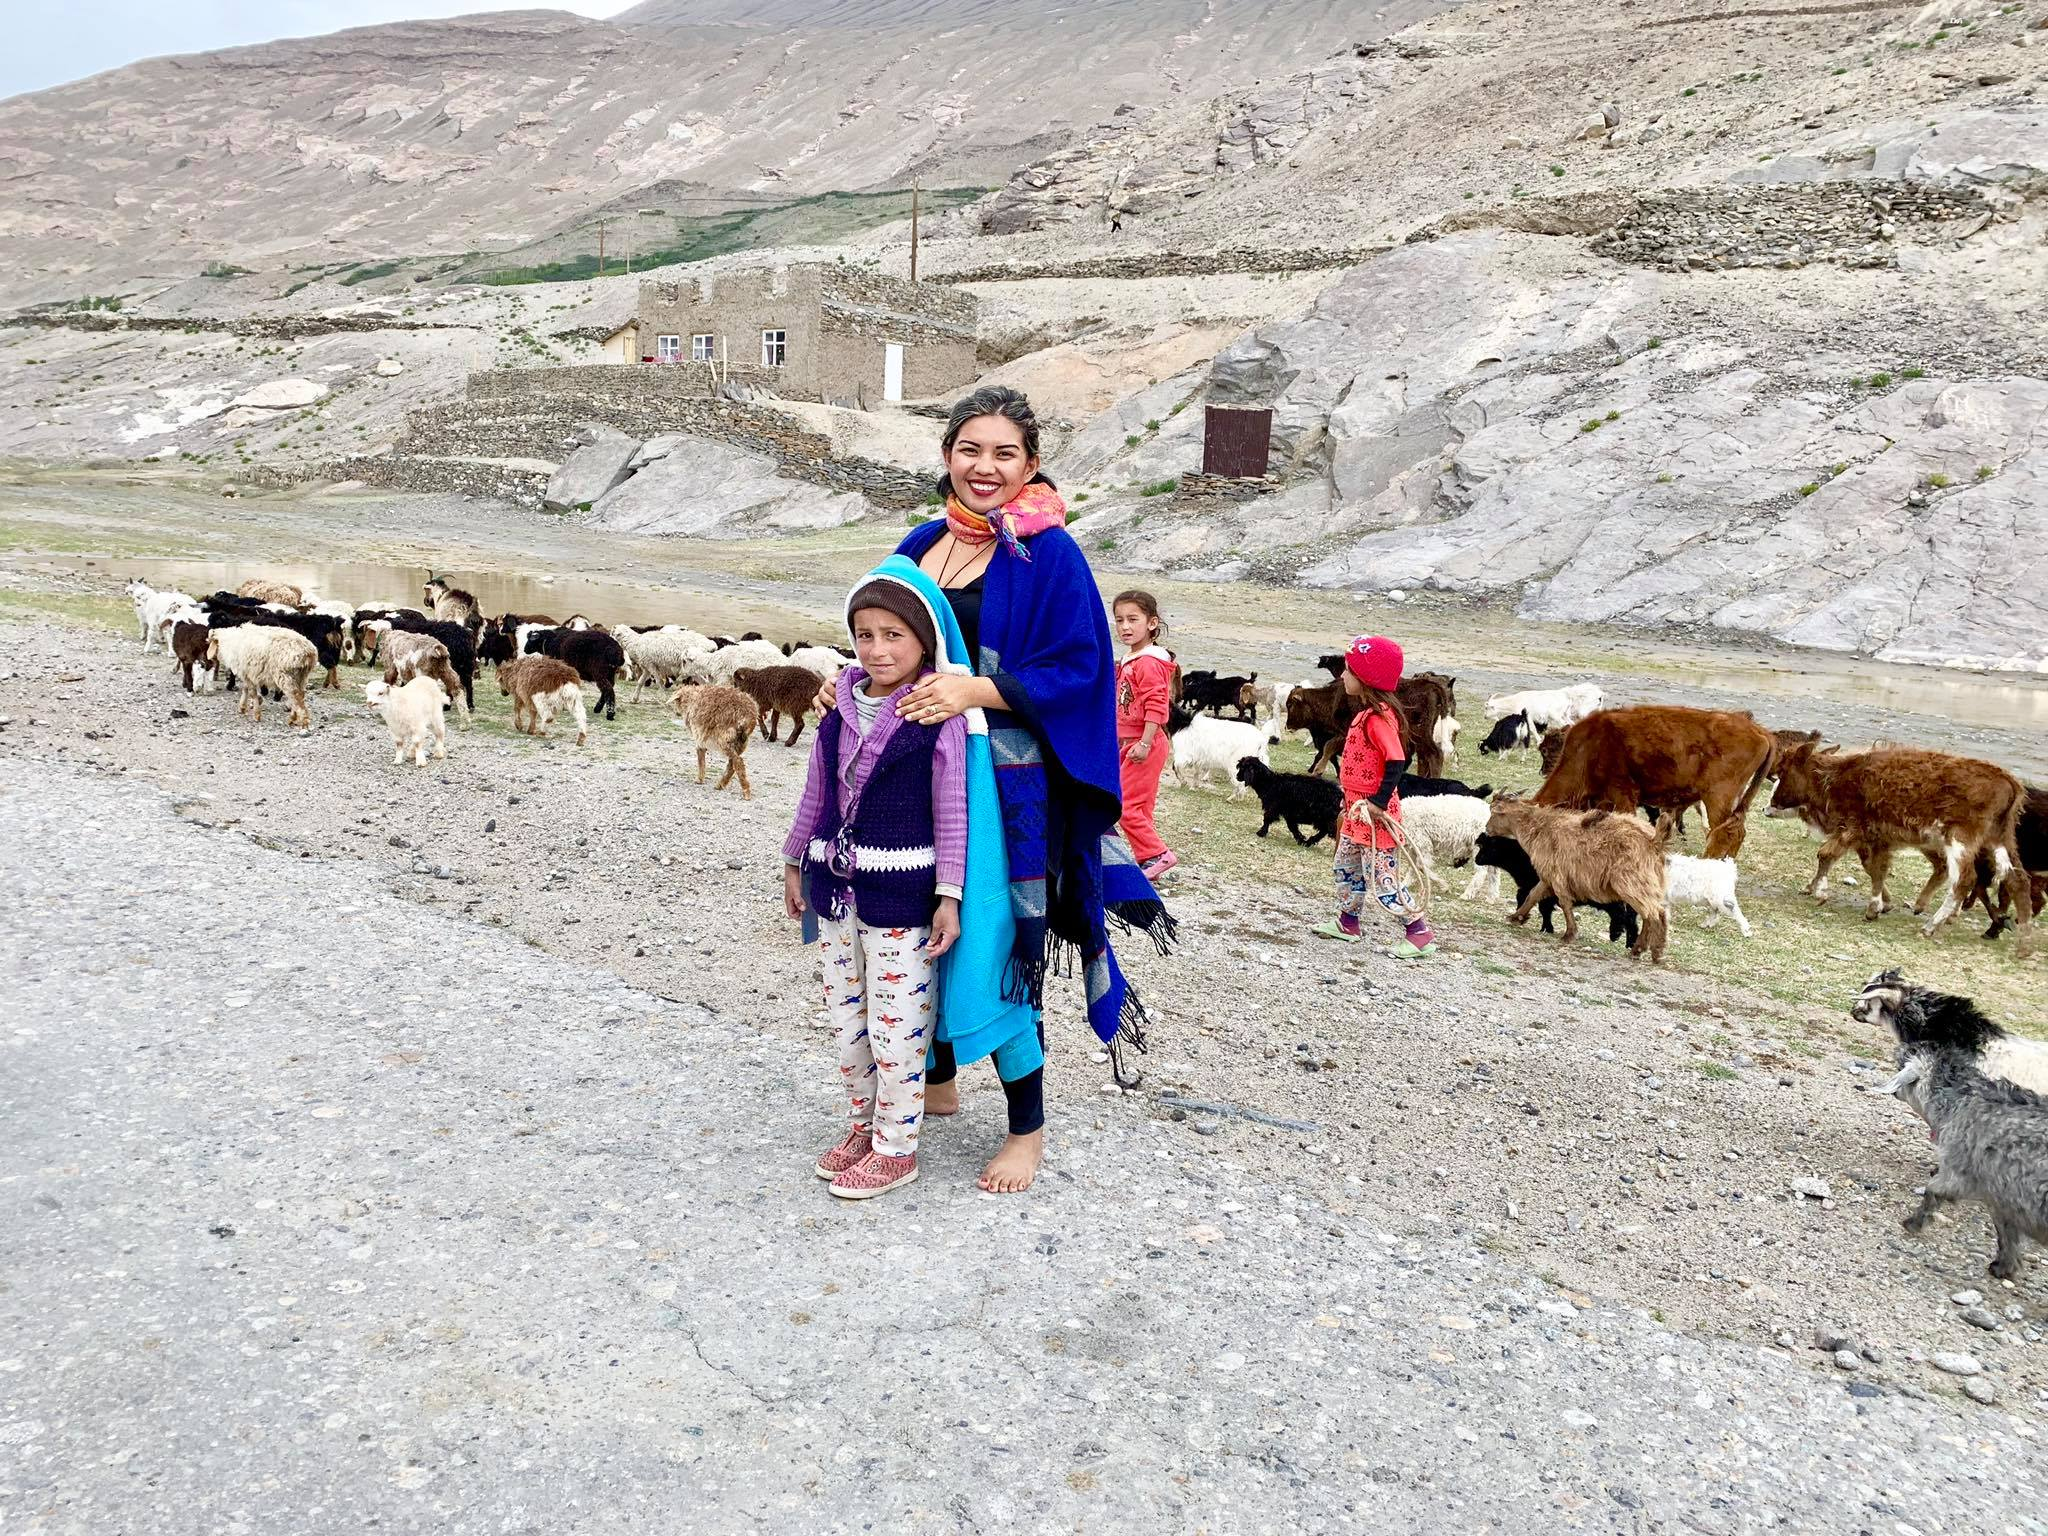 Kach Solo Travels in 2019 Driving from Ishkashim to Wakhan Valley4.jpg